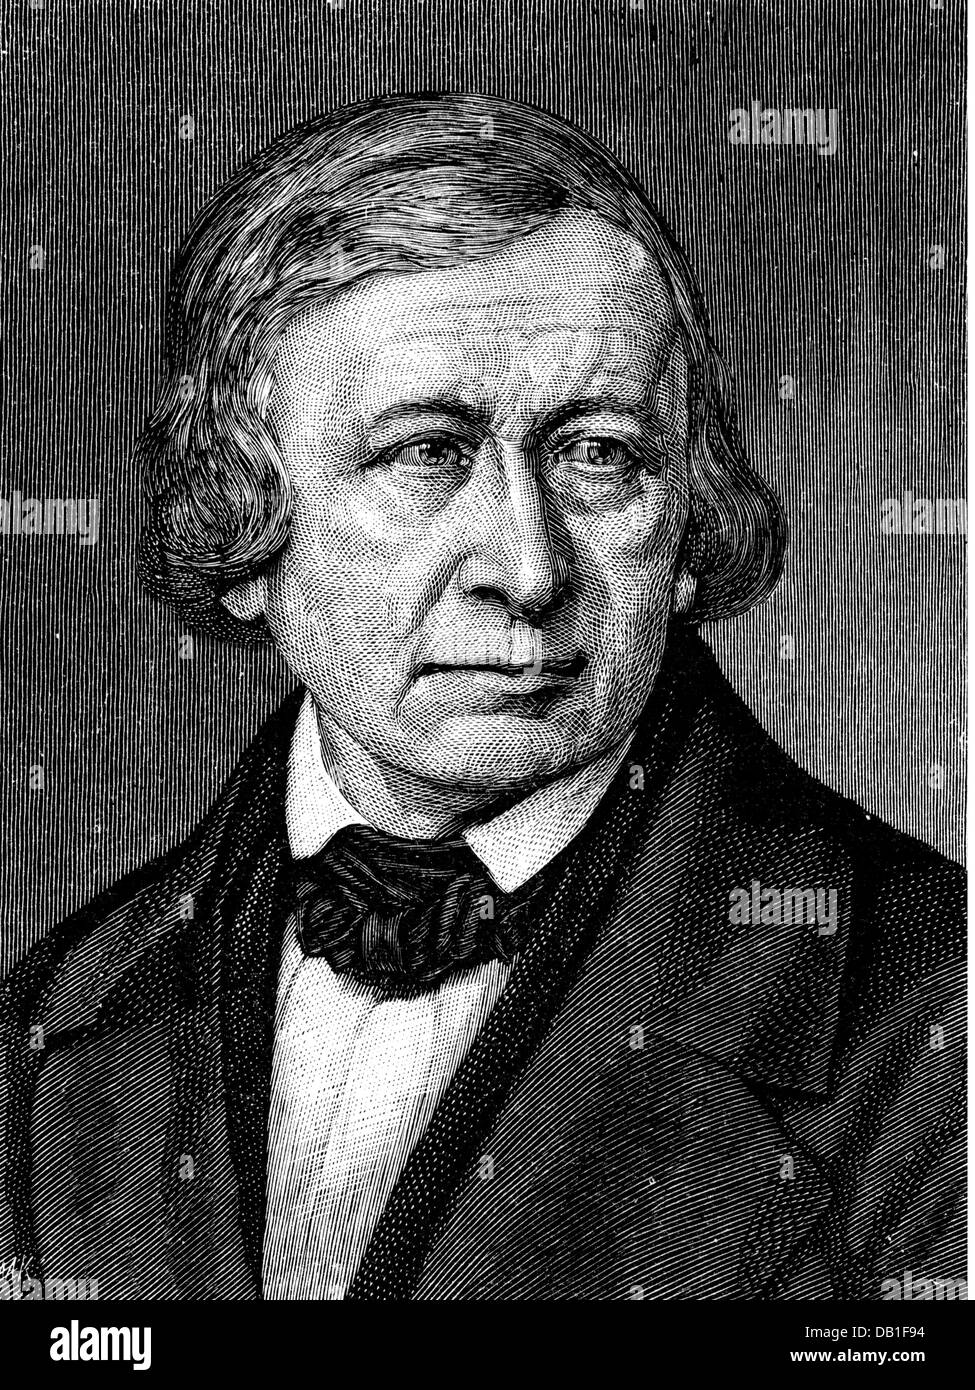 Grimm, Wilhelm, 24.2.1786 - 16.12.1859, German philologist, professor in Göttingen 1835 - 1837, portrait, portrait - Stock Image